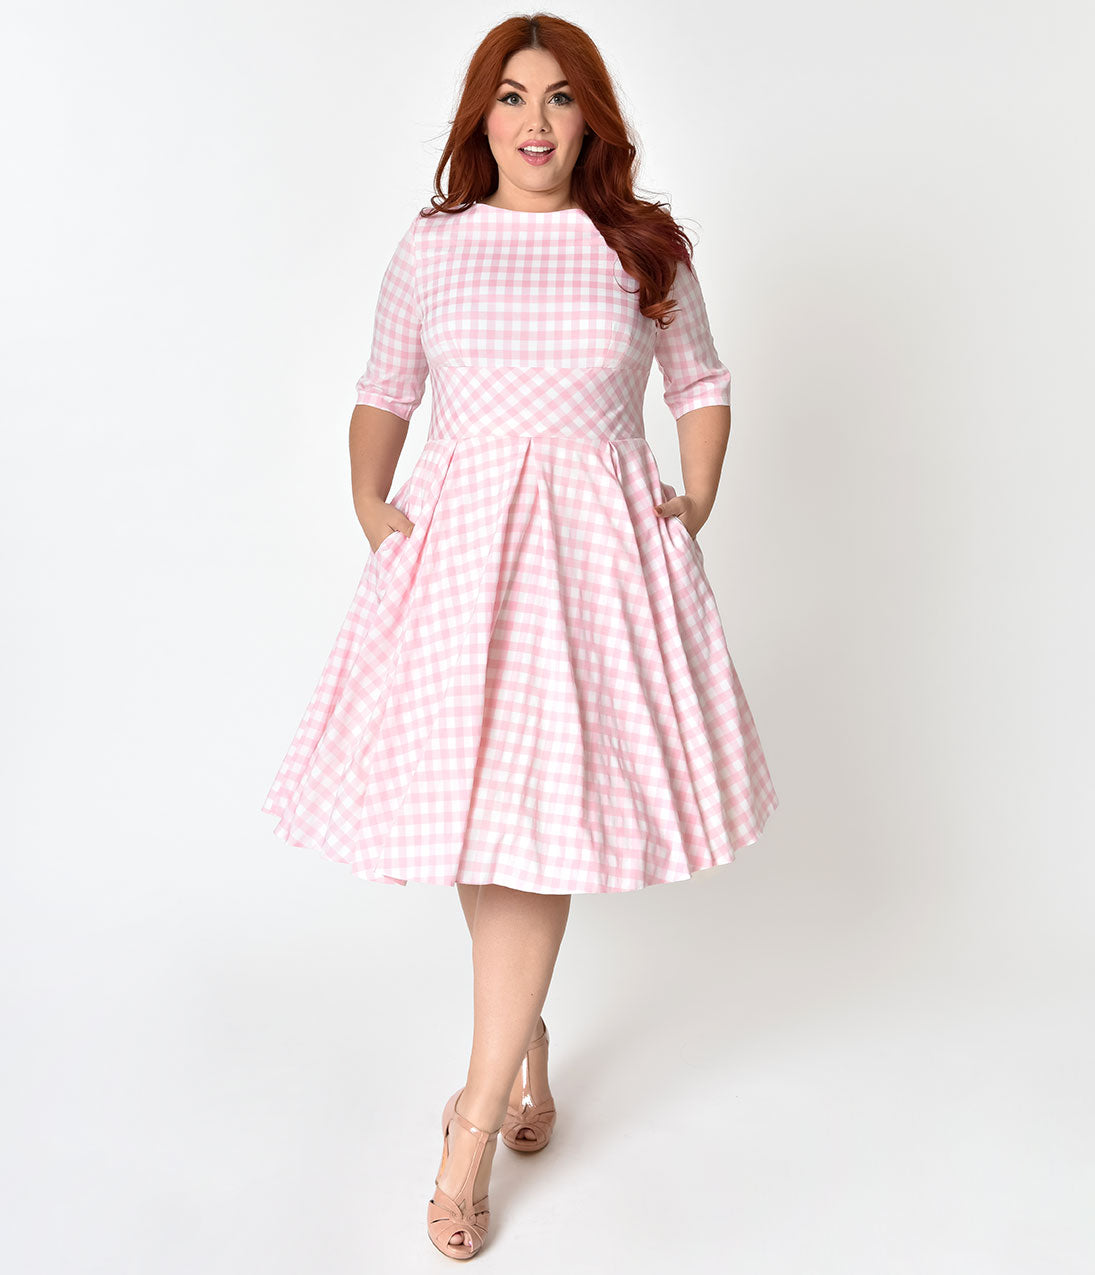 Plus Size Swing Dresses, Vintage Dresses The Pretty Dress Company Plus Size Pink  White Gingham Hepburn Swing Dress $146.00 AT vintagedancer.com